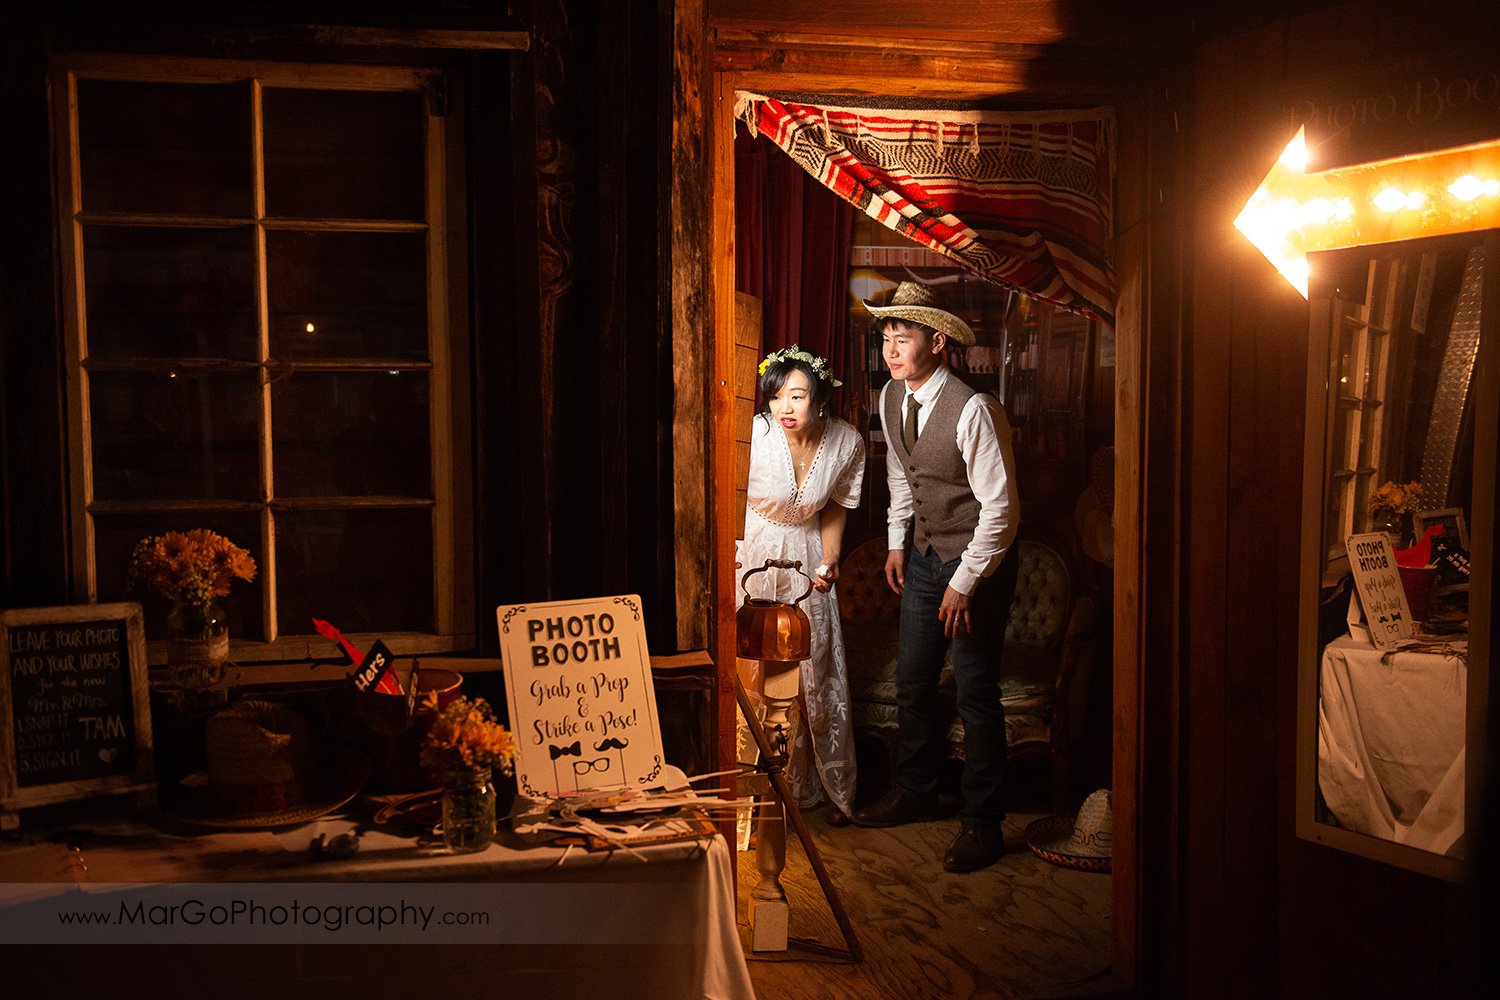 bride and groom at photo booth during wedding reception at Long Branch Saloon & Farms in Half Moon Bay